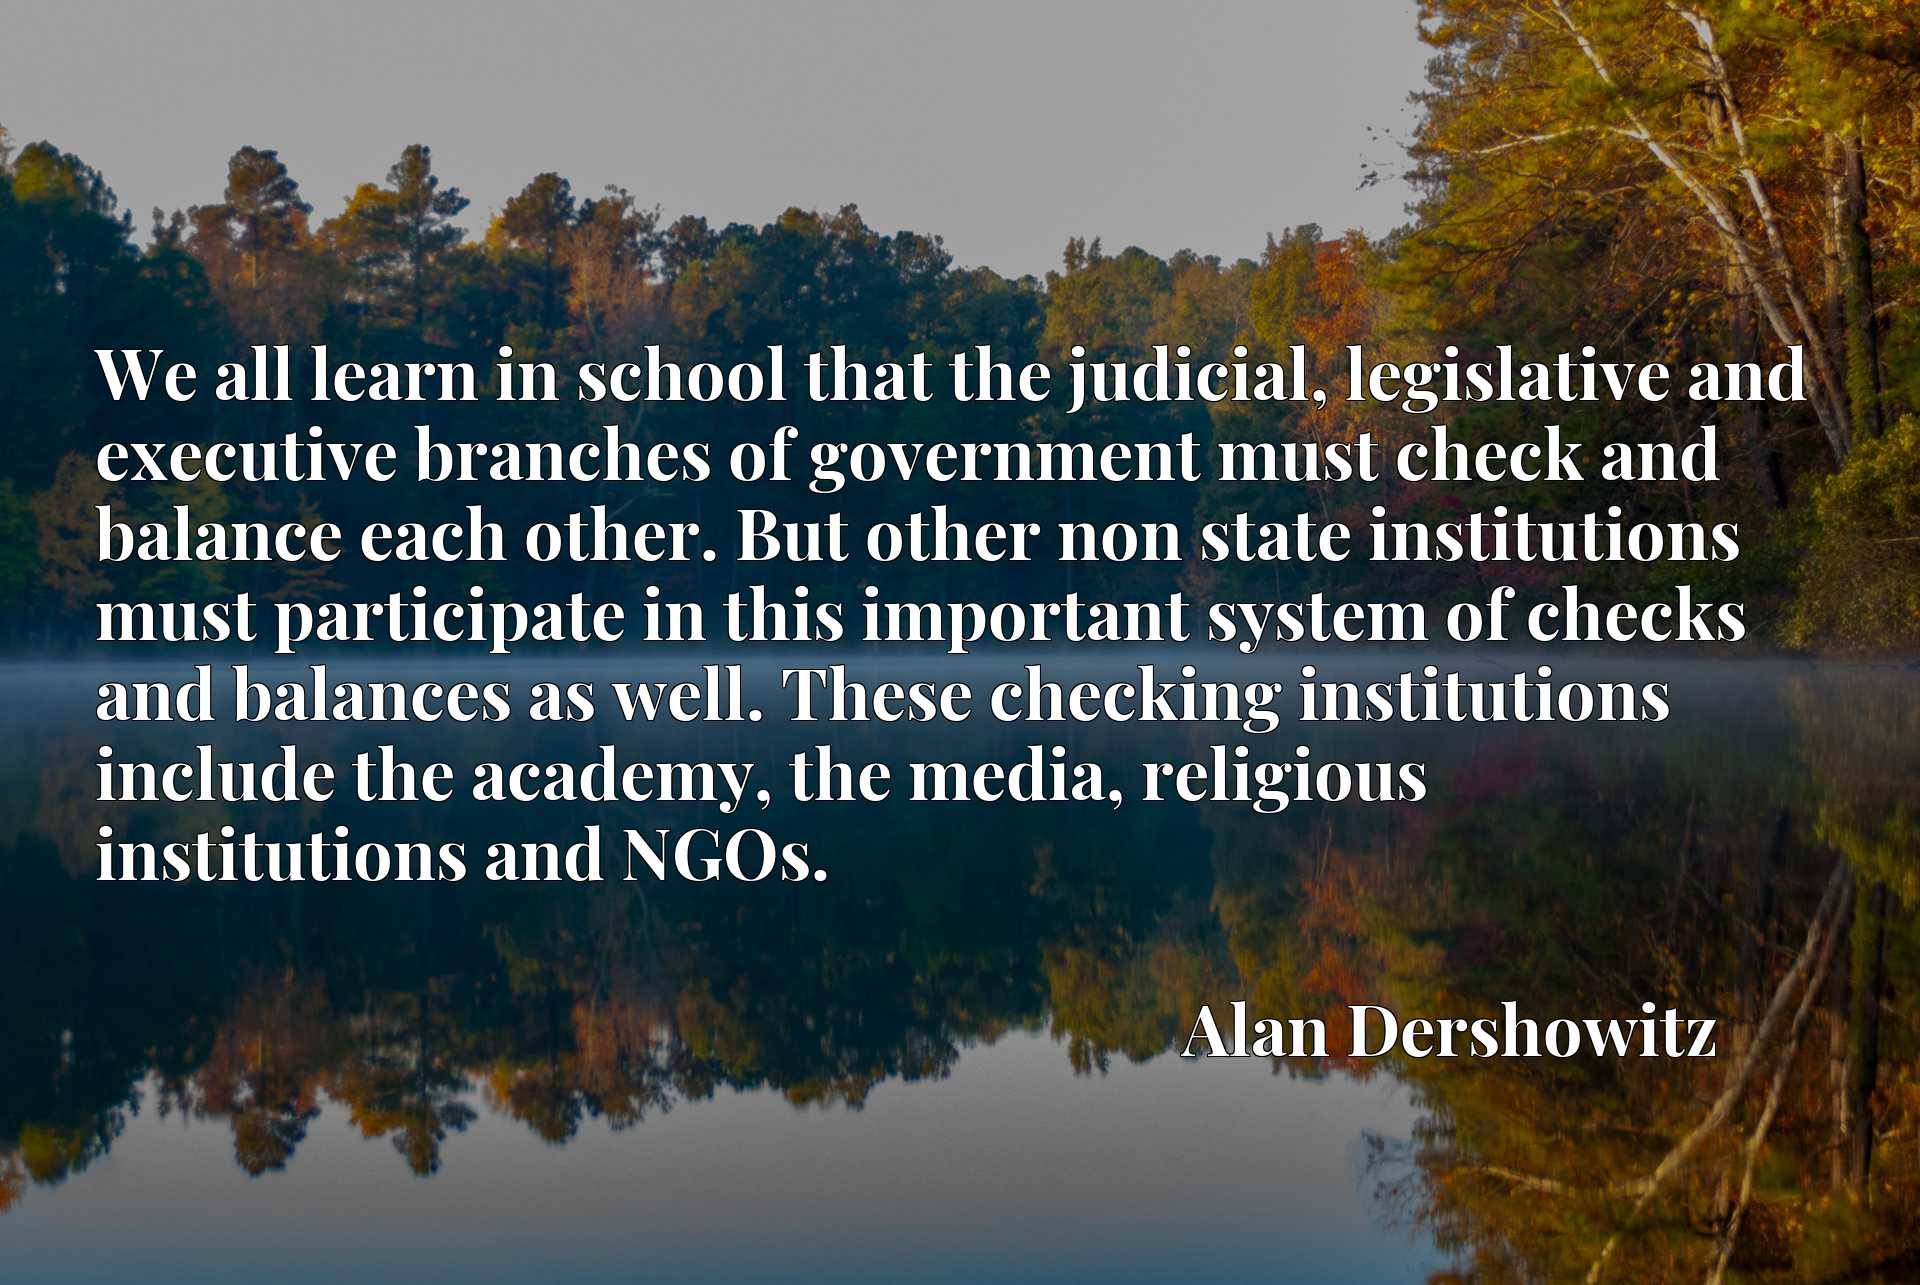 We all learn in school that the judicial, legislative and executive branches of government must check and balance each other. But other non state institutions must participate in this important system of checks and balances as well. These checking institutions include the academy, the media, religious institutions and NGOs.